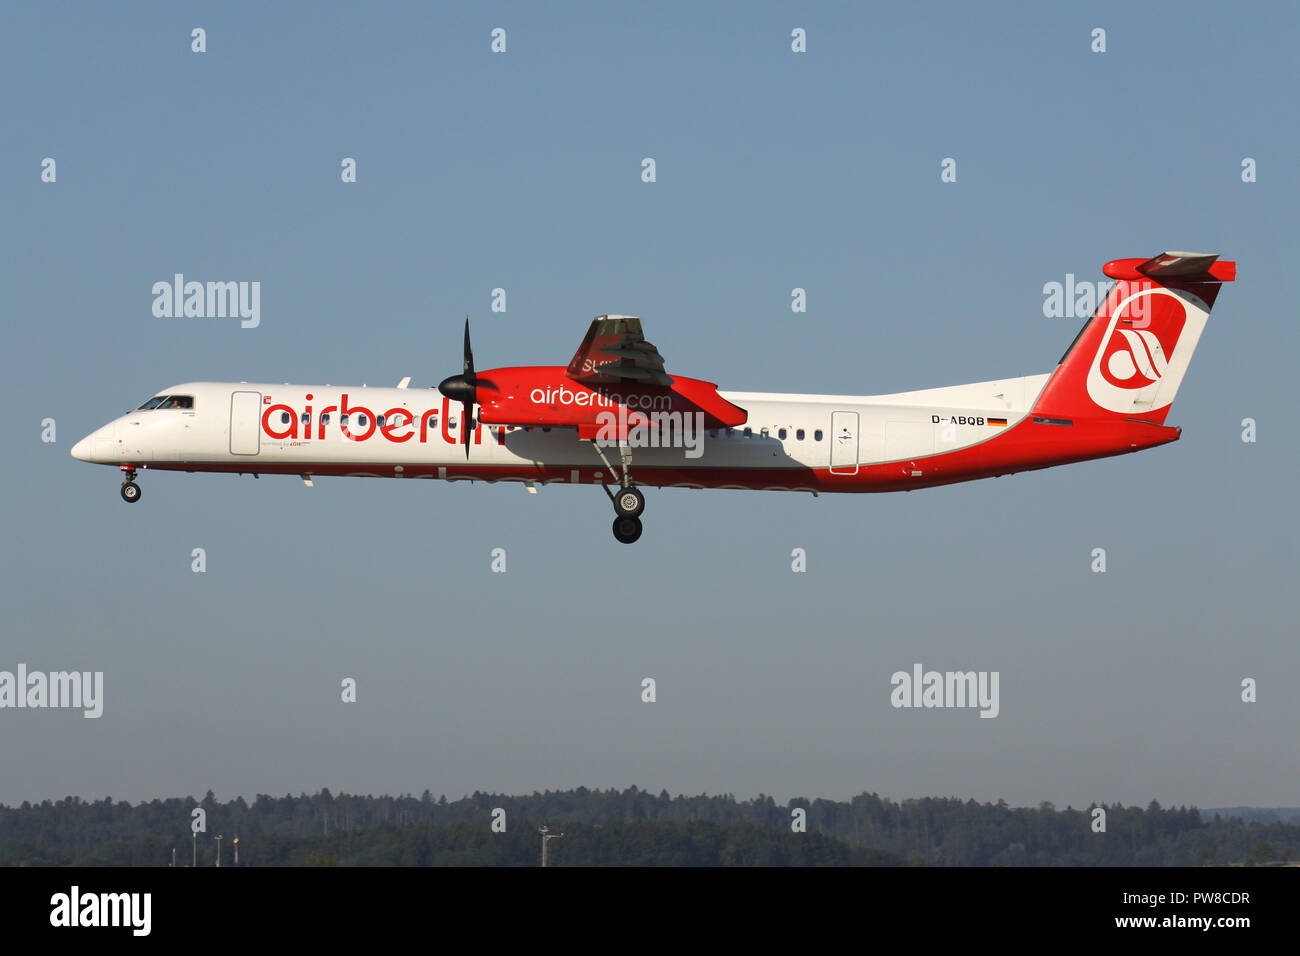 German LGW Bombardier Dash 8 Q400 in Air Berlin livery with registration D-ABQB on short final for runway 14 of Zurich Airport. - Stock Image